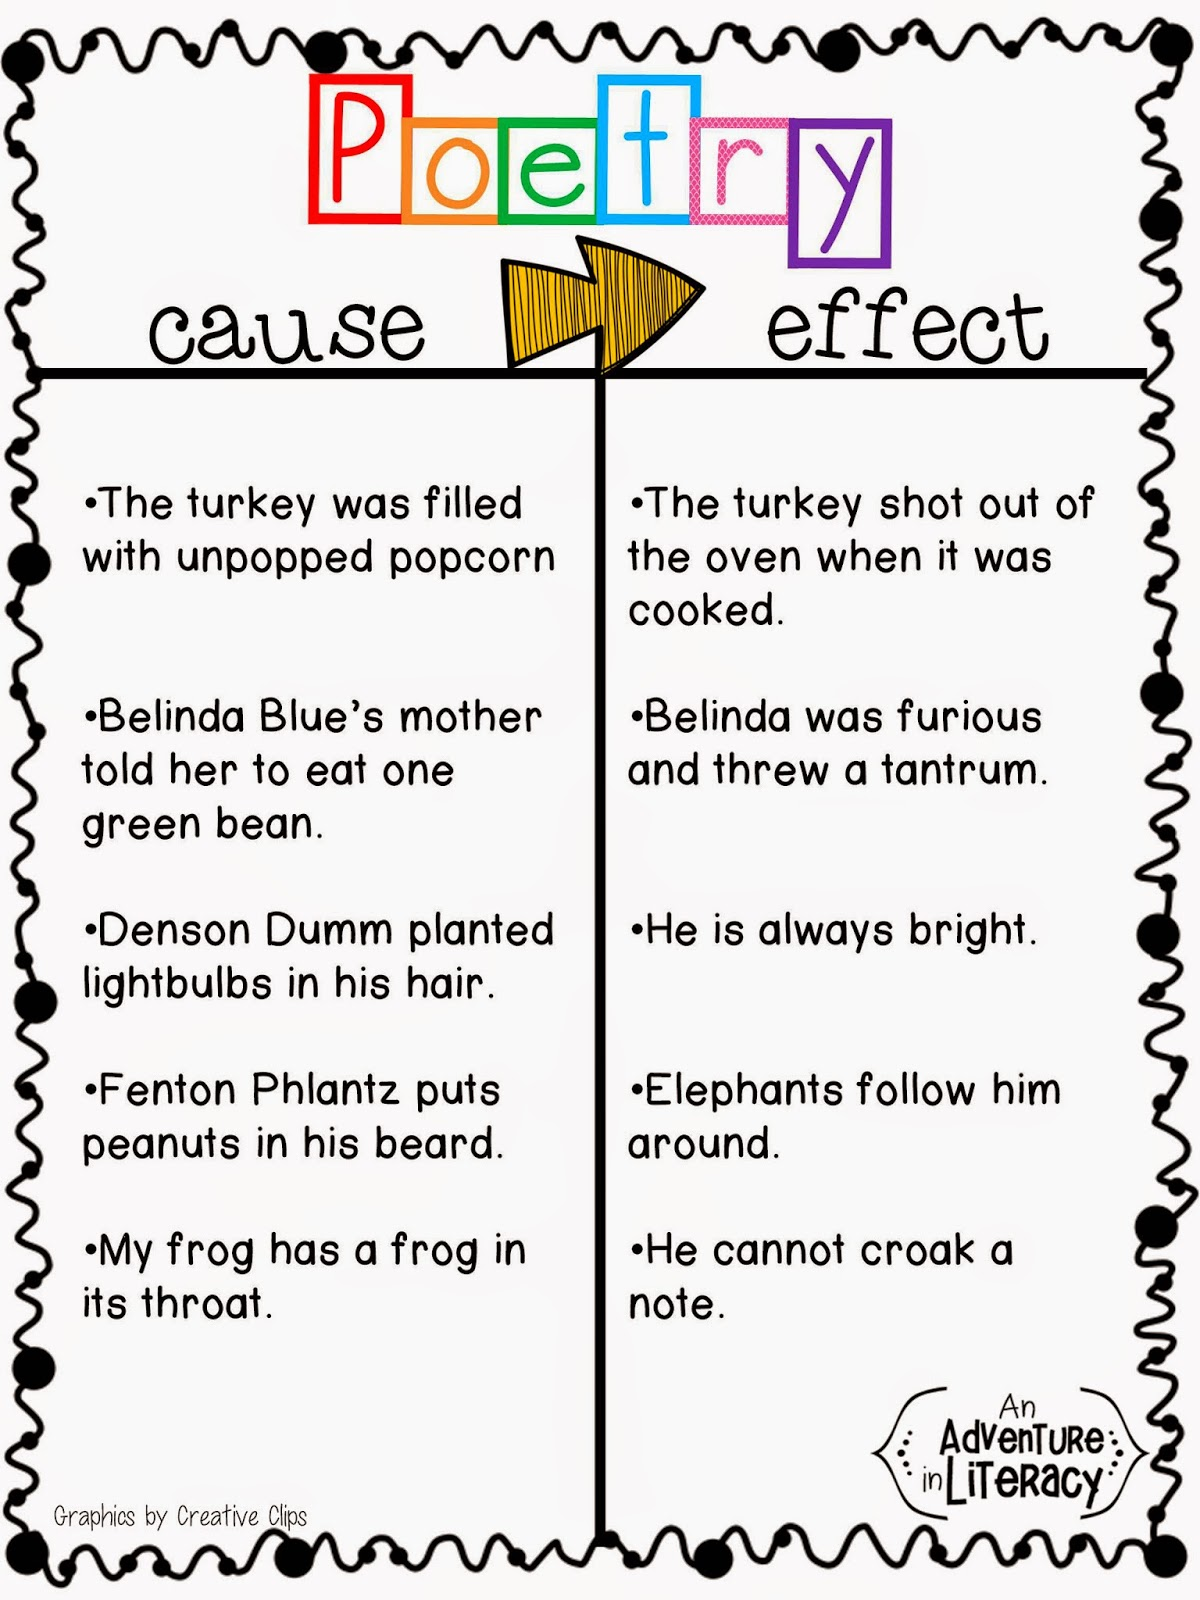 Cause And Effect Worksheets For Kindergarten cause and effect – Cause and Effect Kindergarten Worksheets